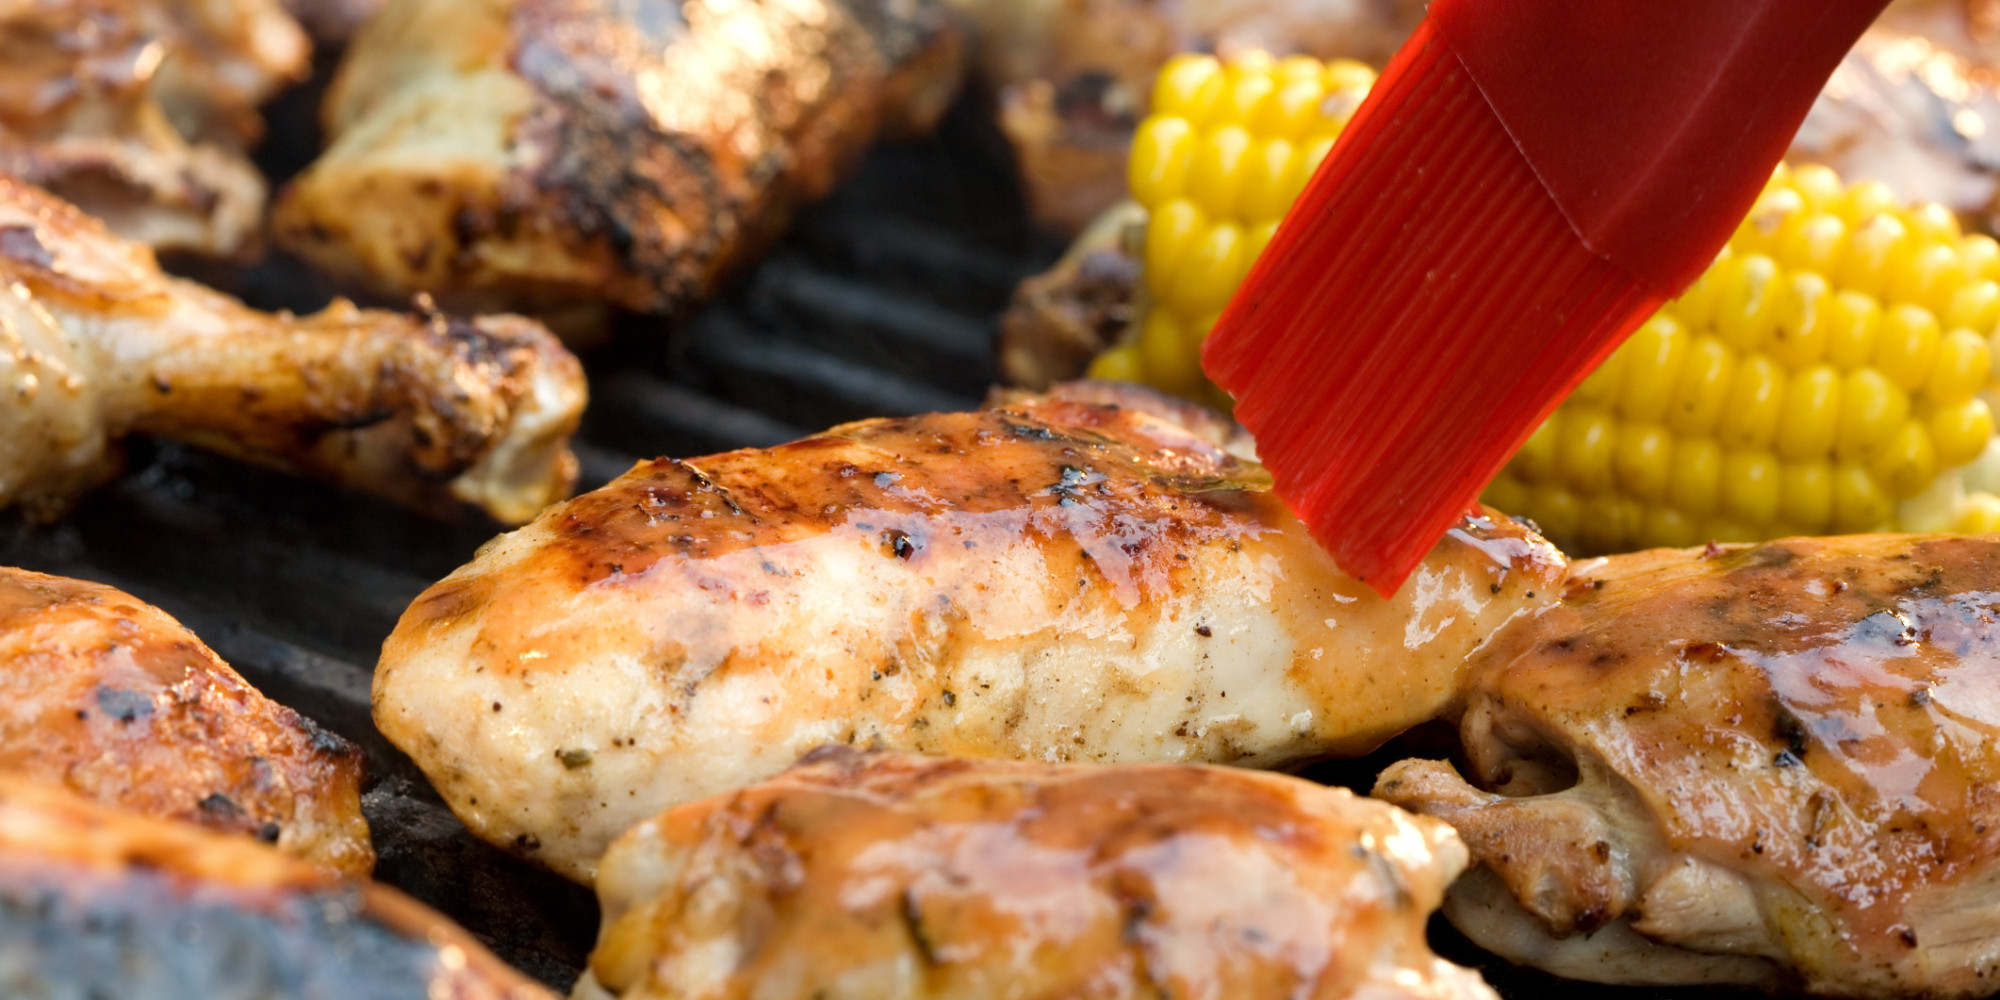 10 Grilling Tips For The Best Barbecue Chicken